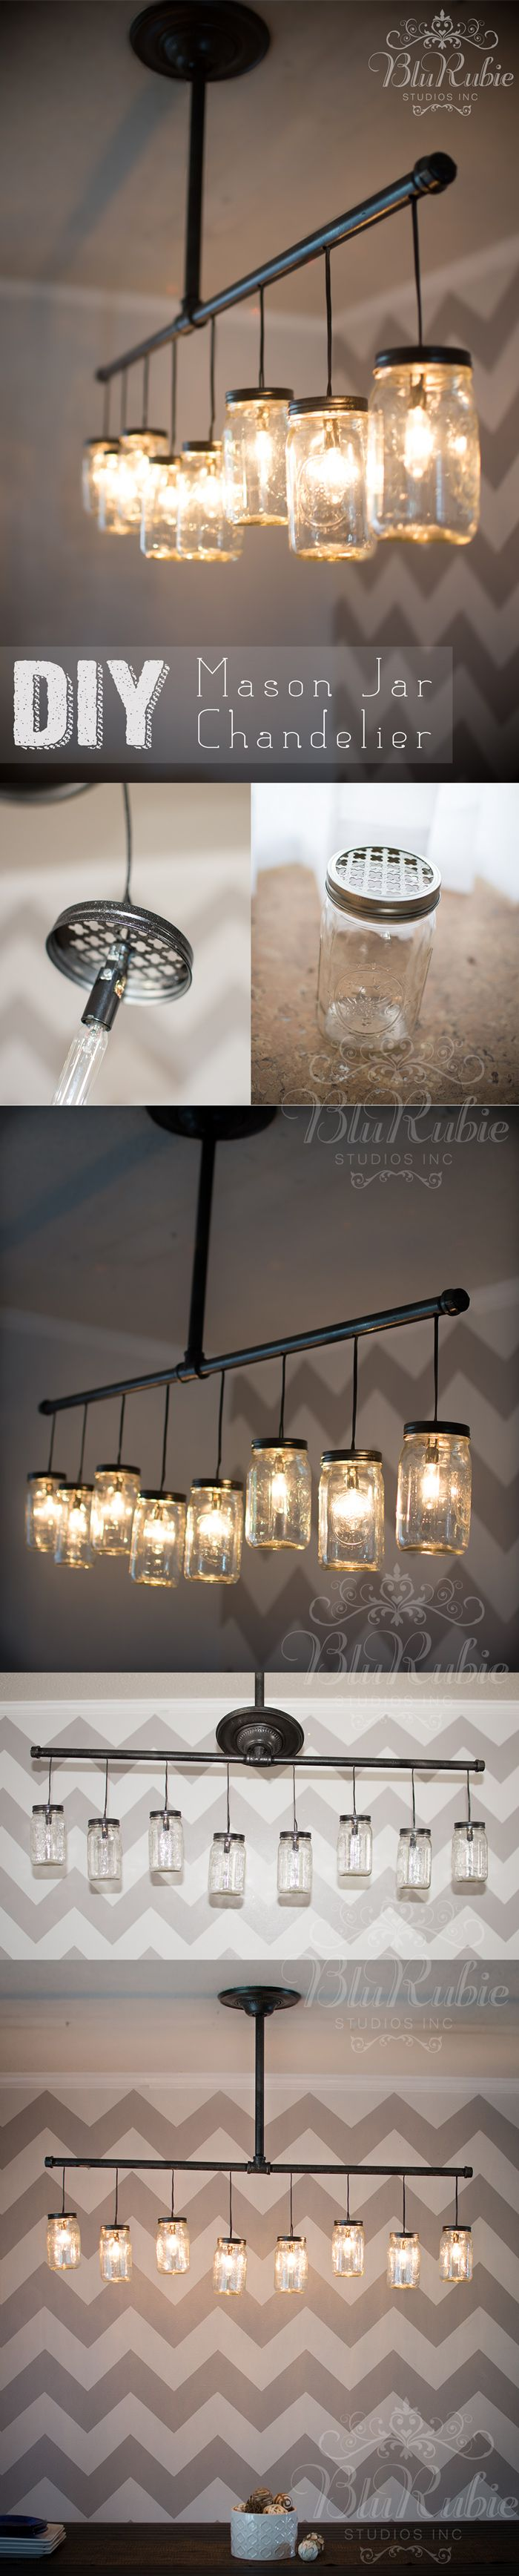 online shoes store DIY Mason Jar Chandelier